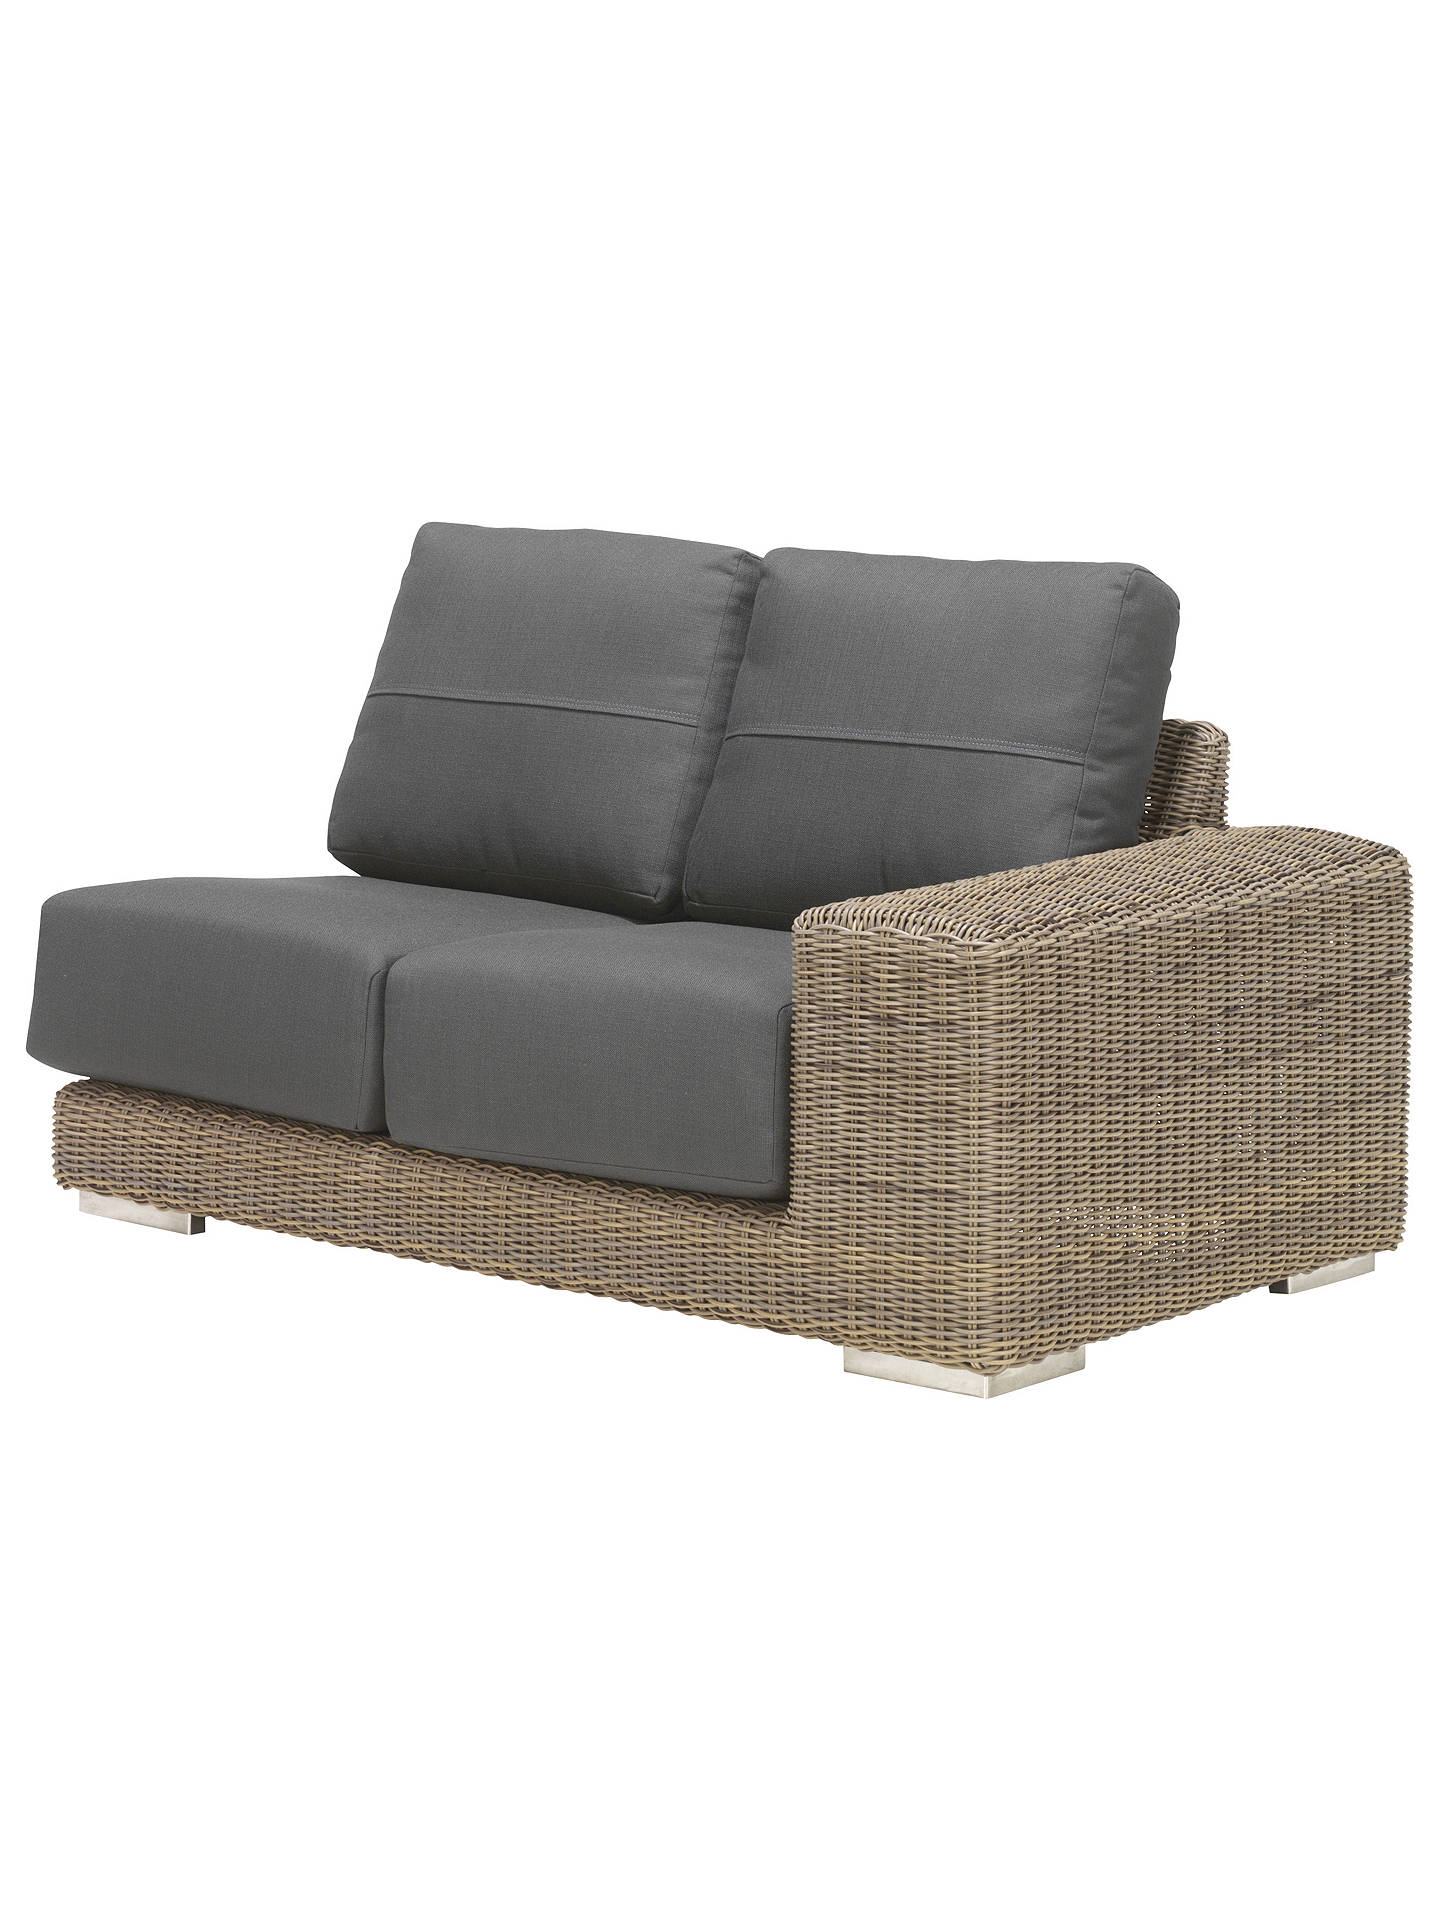 Buy4 Seasons Outdoor Kingston 5 Seater Garden Modular Set, Pure Online at johnlewis.com